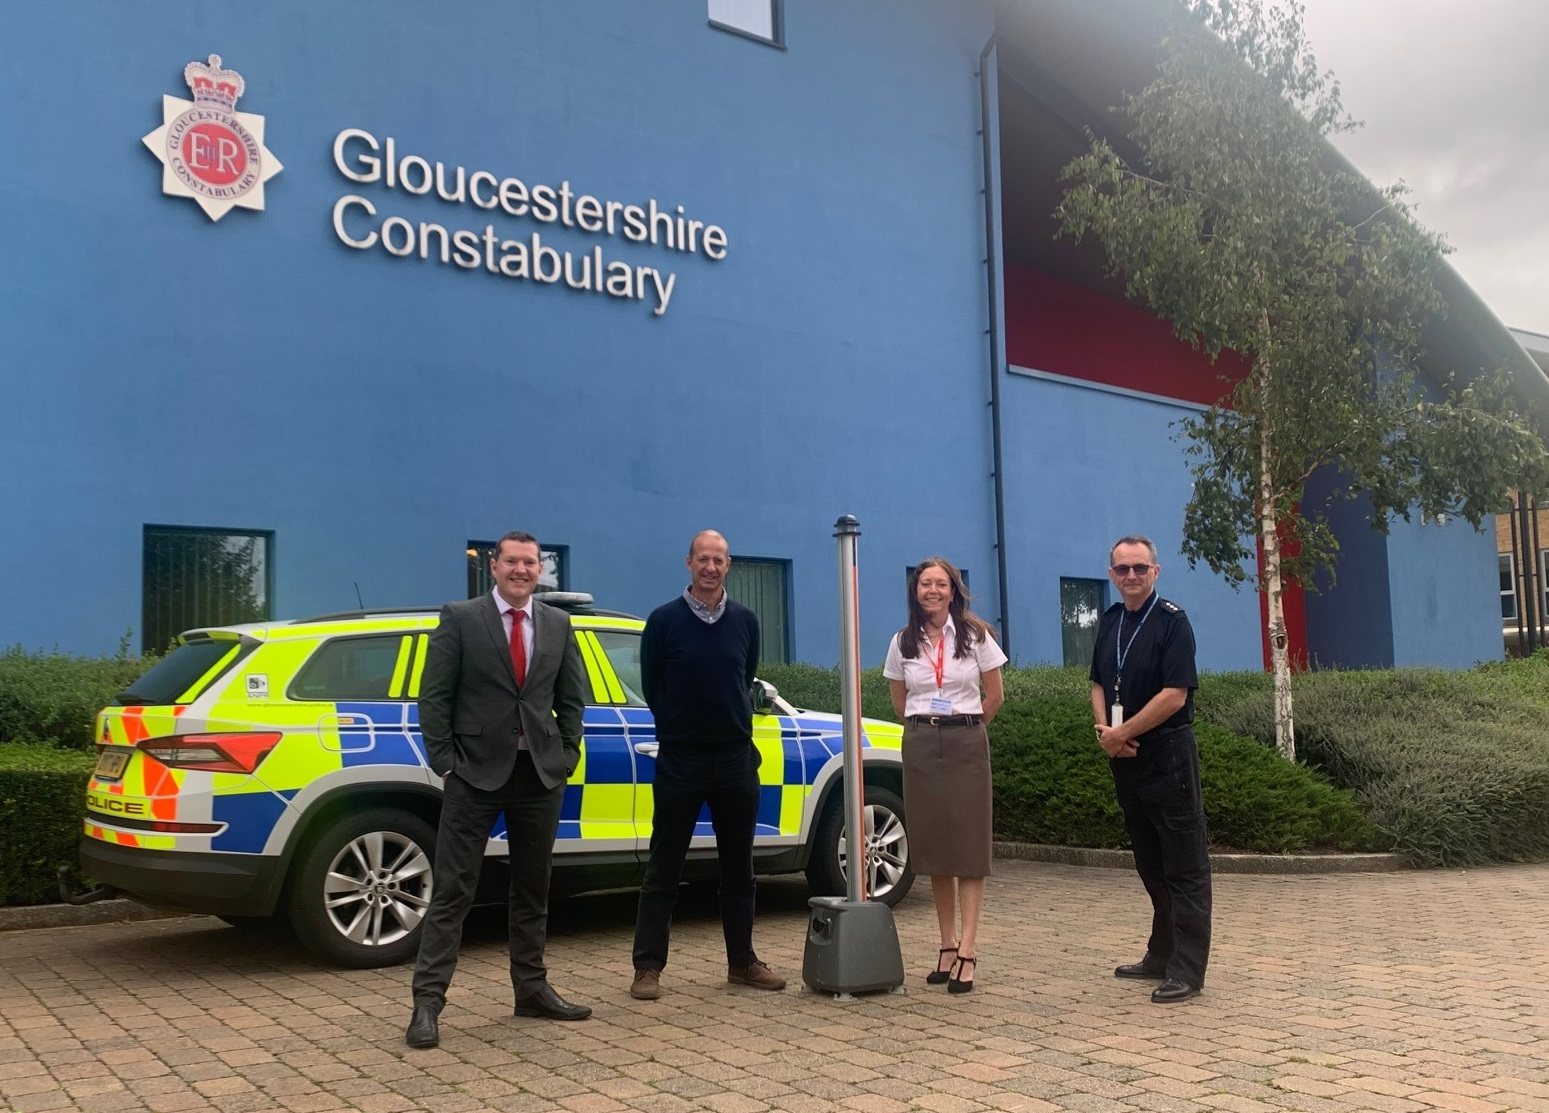 Gloucestershire Constabulary First To Use New Technology In Fight Against Knife Crime